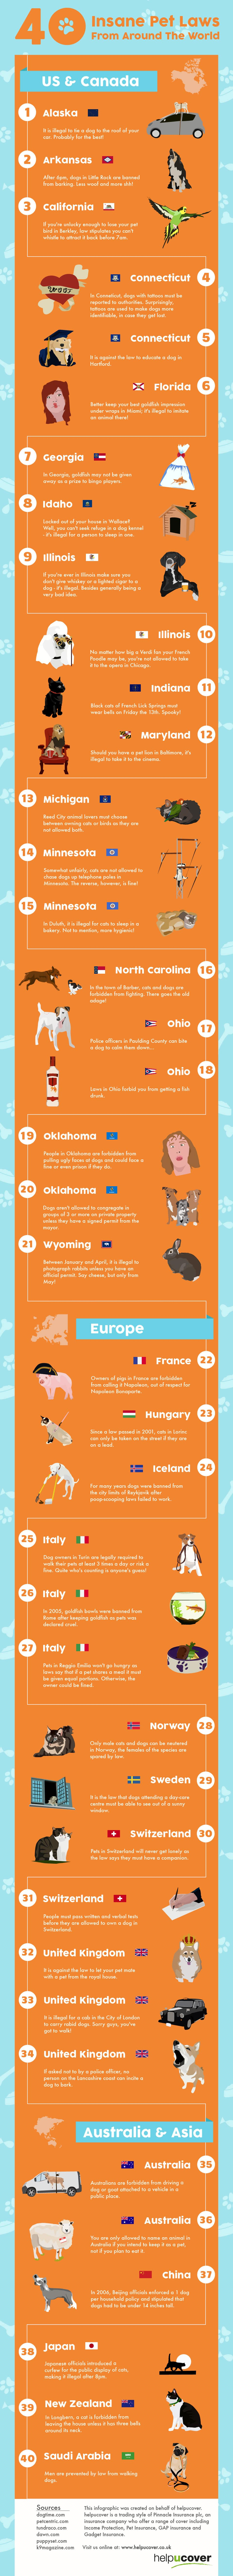 The 40 Strangest Pet Laws Around The World [Infographic]